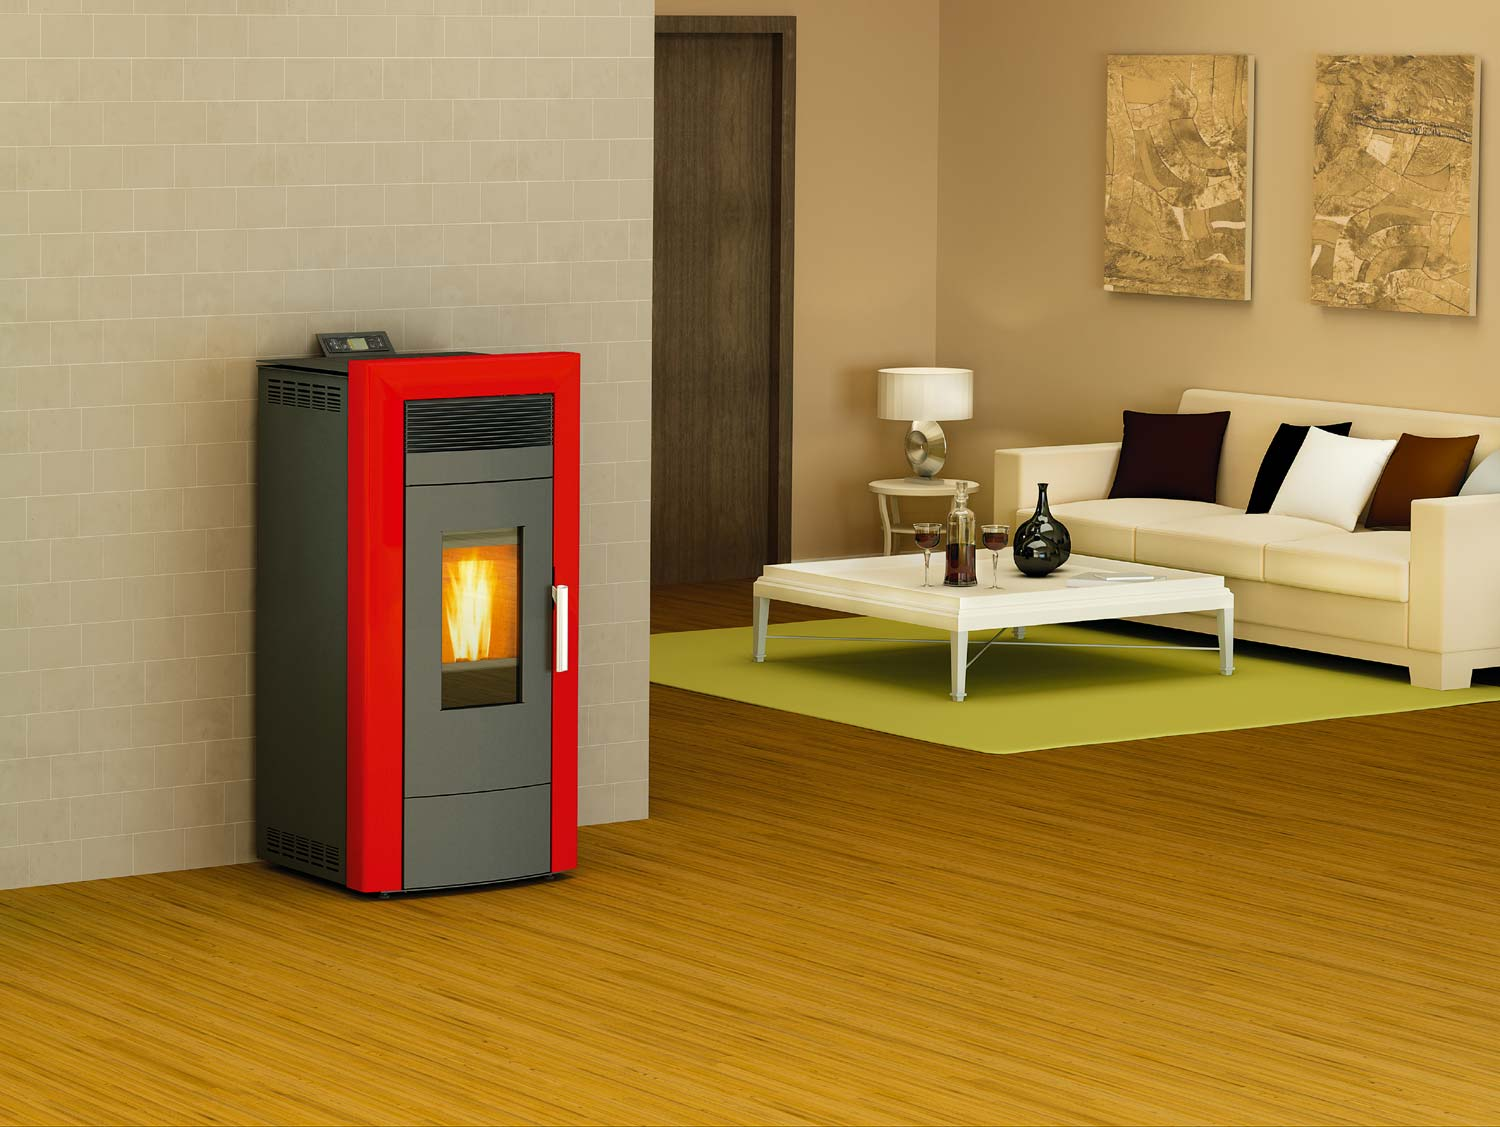 Centralheating pellet stove Commo beige 21kW